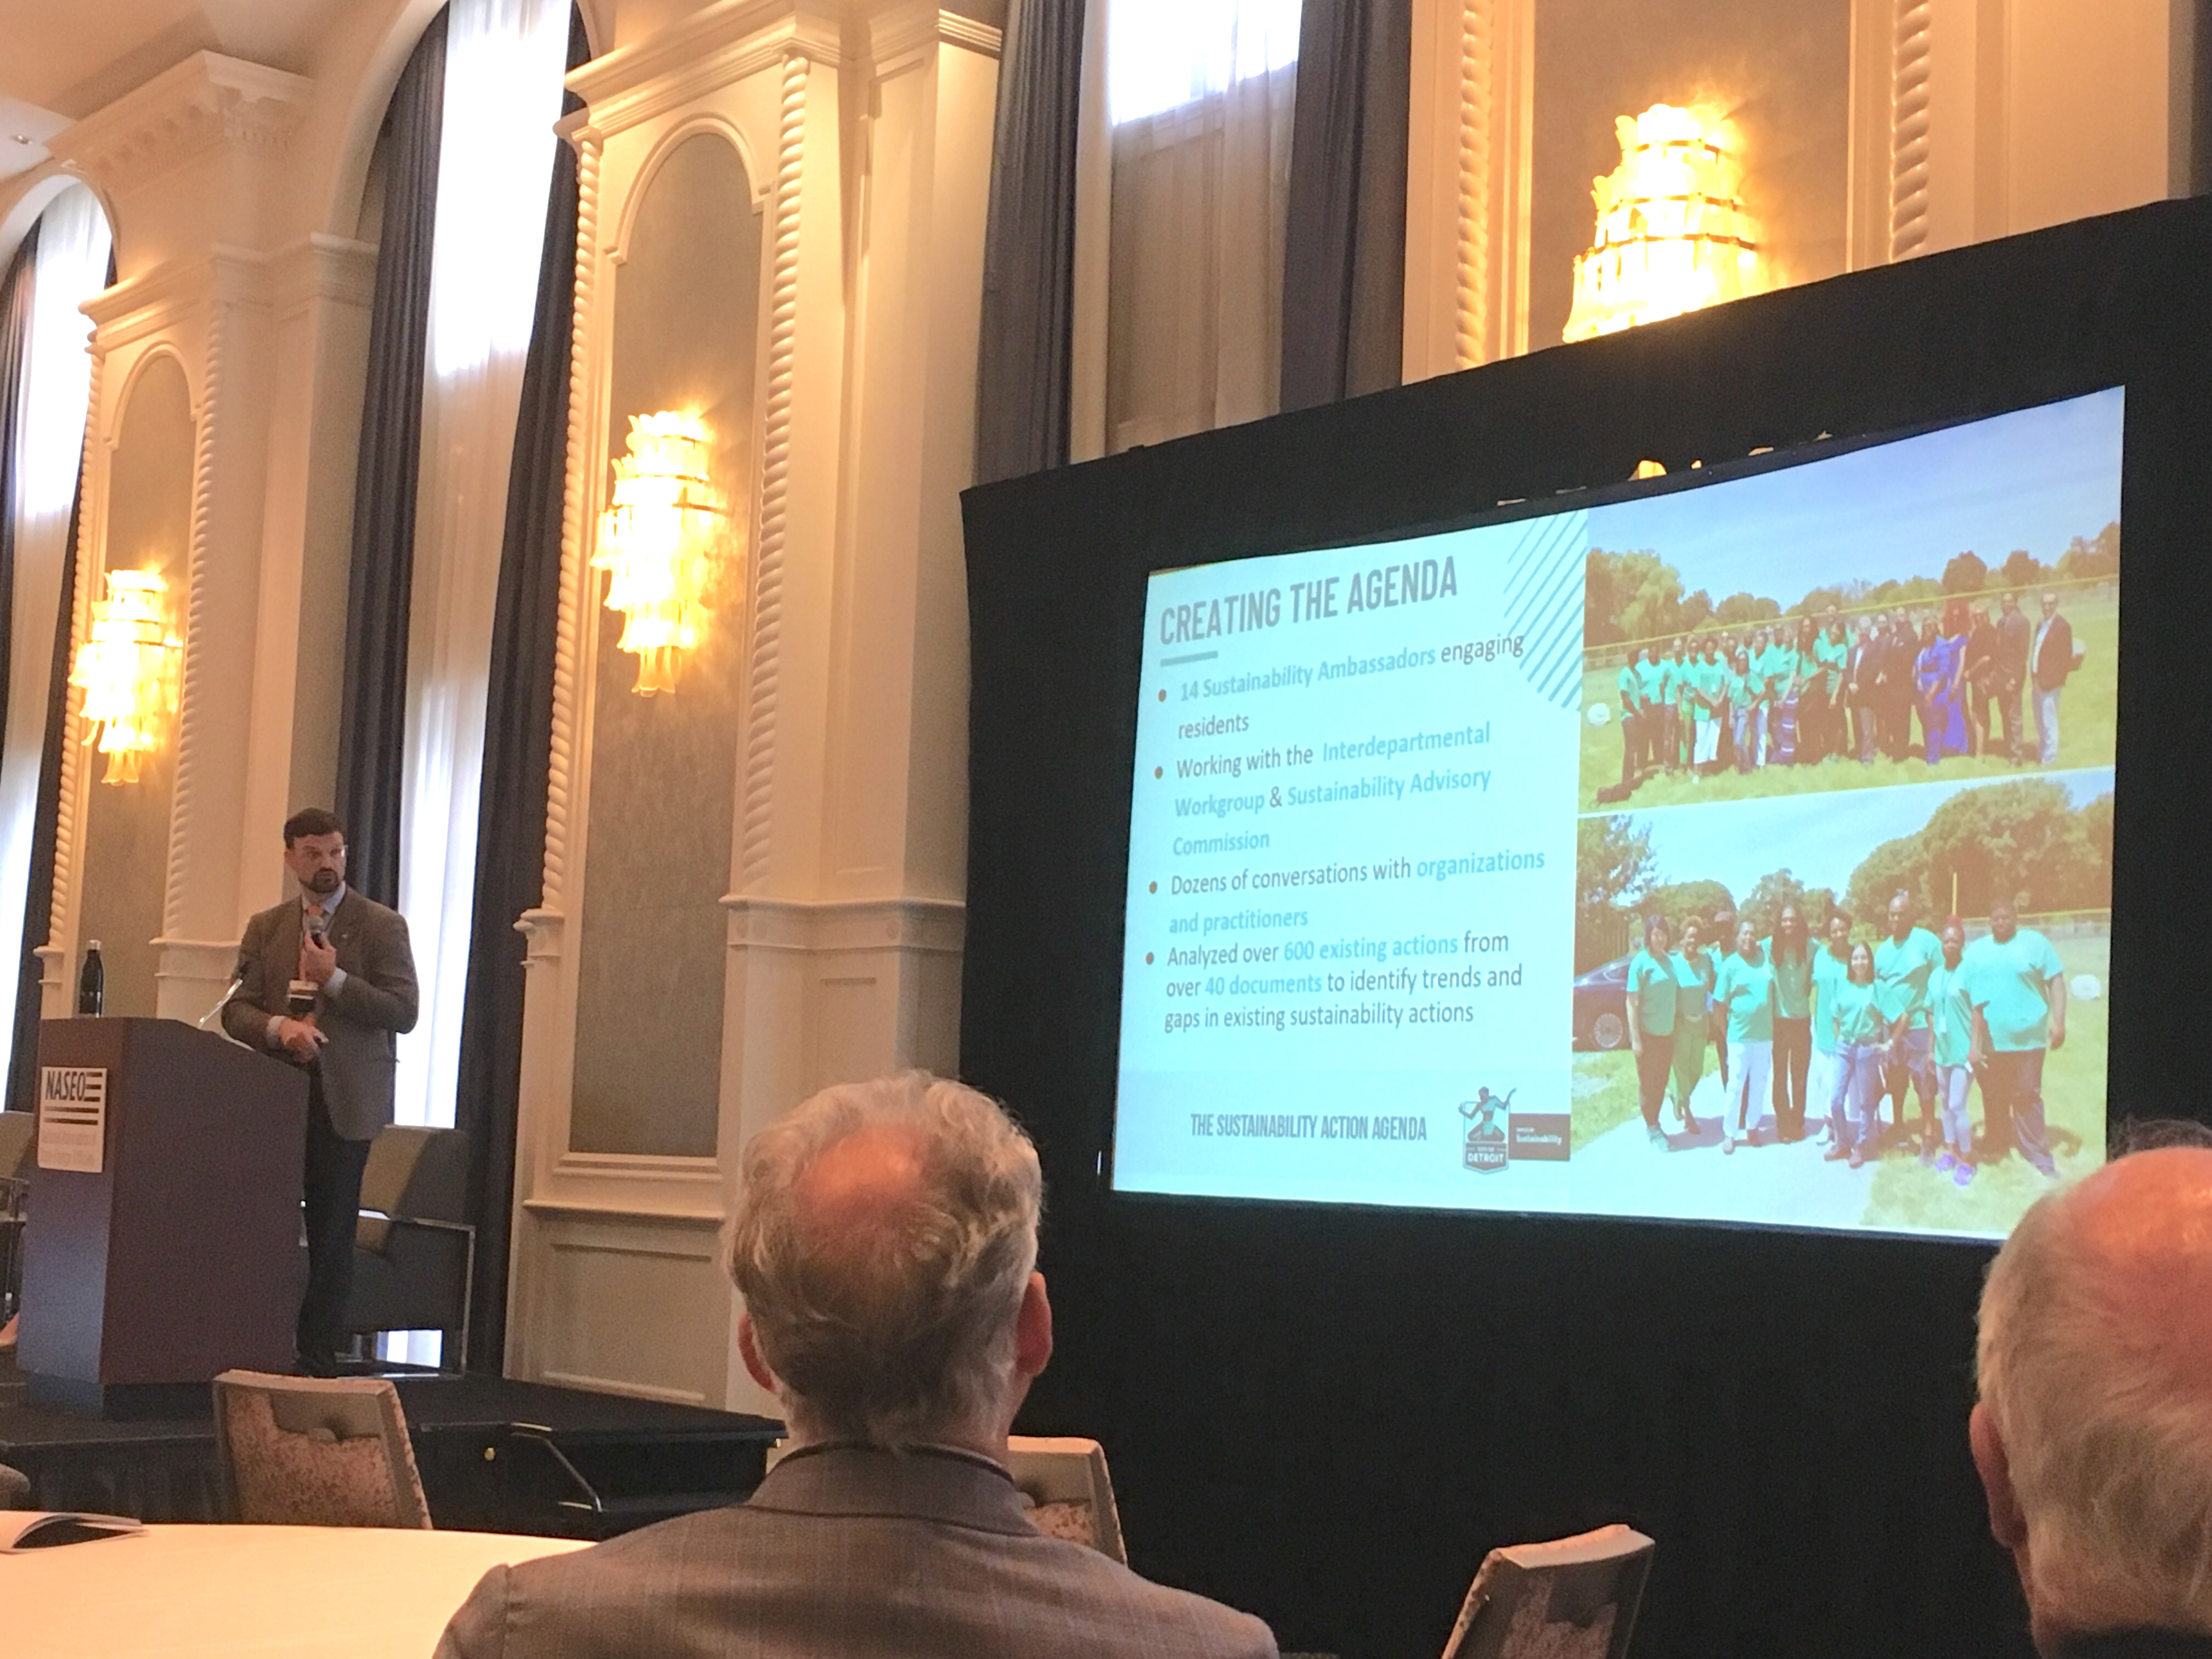 Detroit Sustainability Director Talks Equity, Environment, and Economy at NASEO Annual Meeting